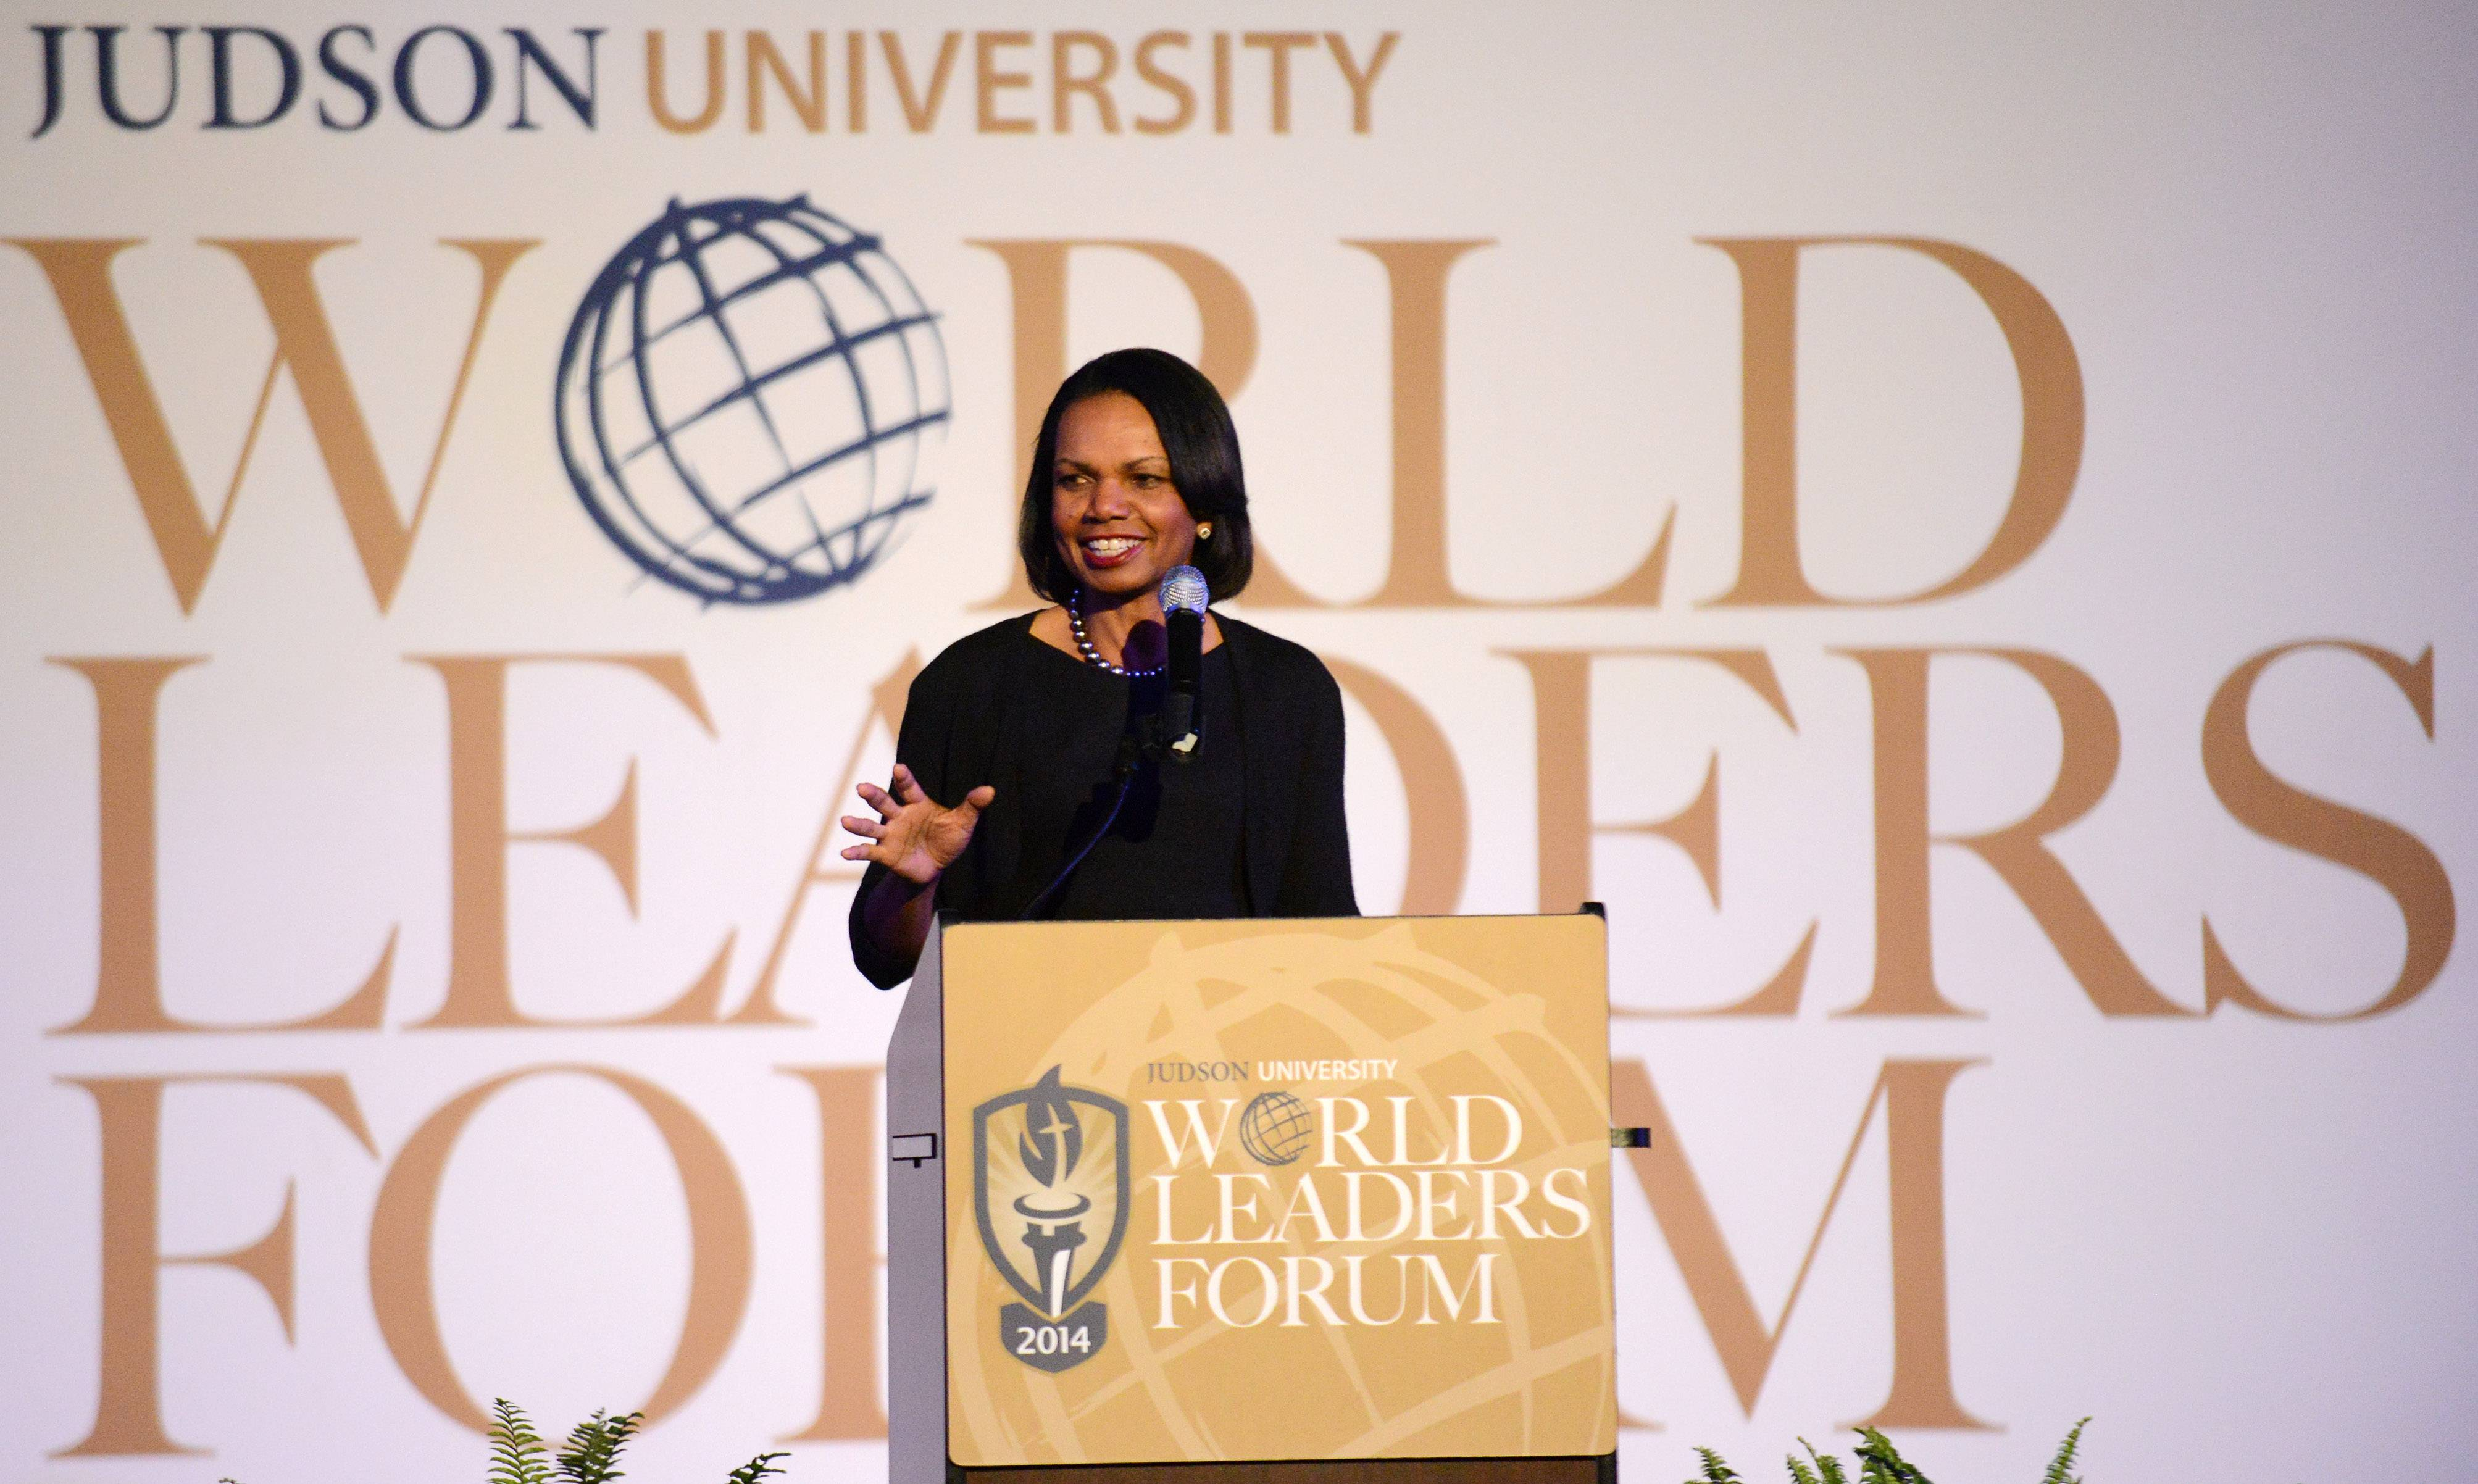 Former Secretary of State Condoleezza Rice gives the keynote speech Wednesday at Judson University's fourth annual World Leaders Forum in Elgin.